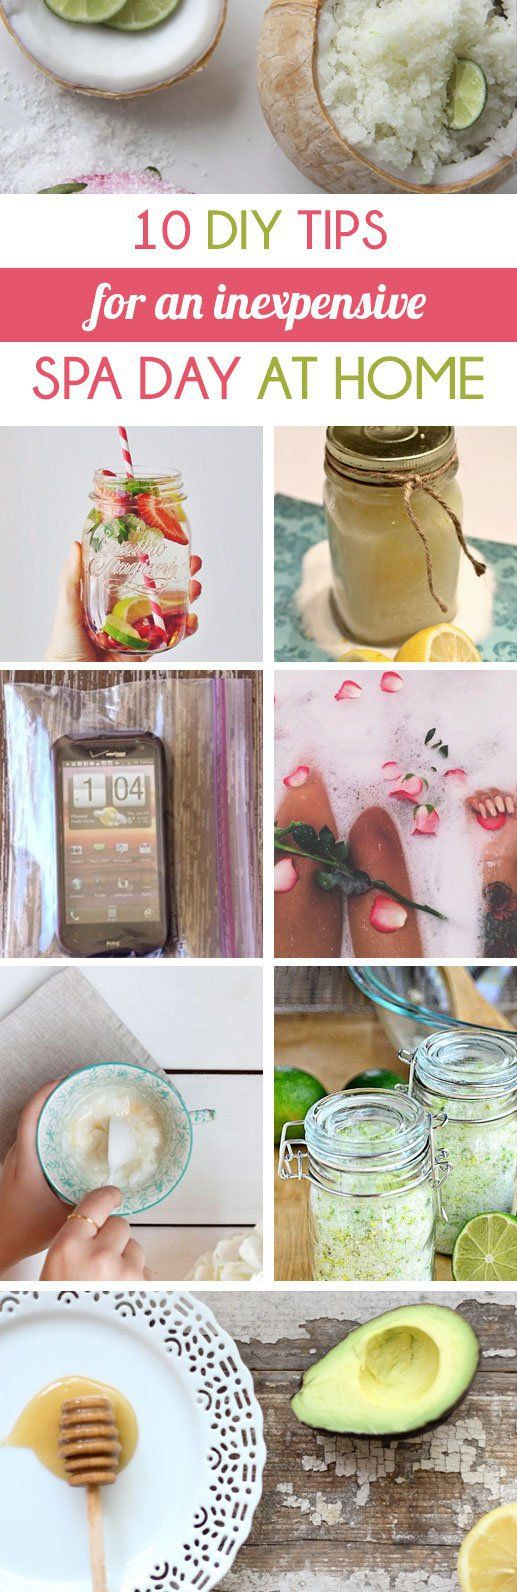 10 Diy Tips For An Inexpensive Spa Day At Home Society19 Spa Day At Home Diy Spa Day Diy Spa